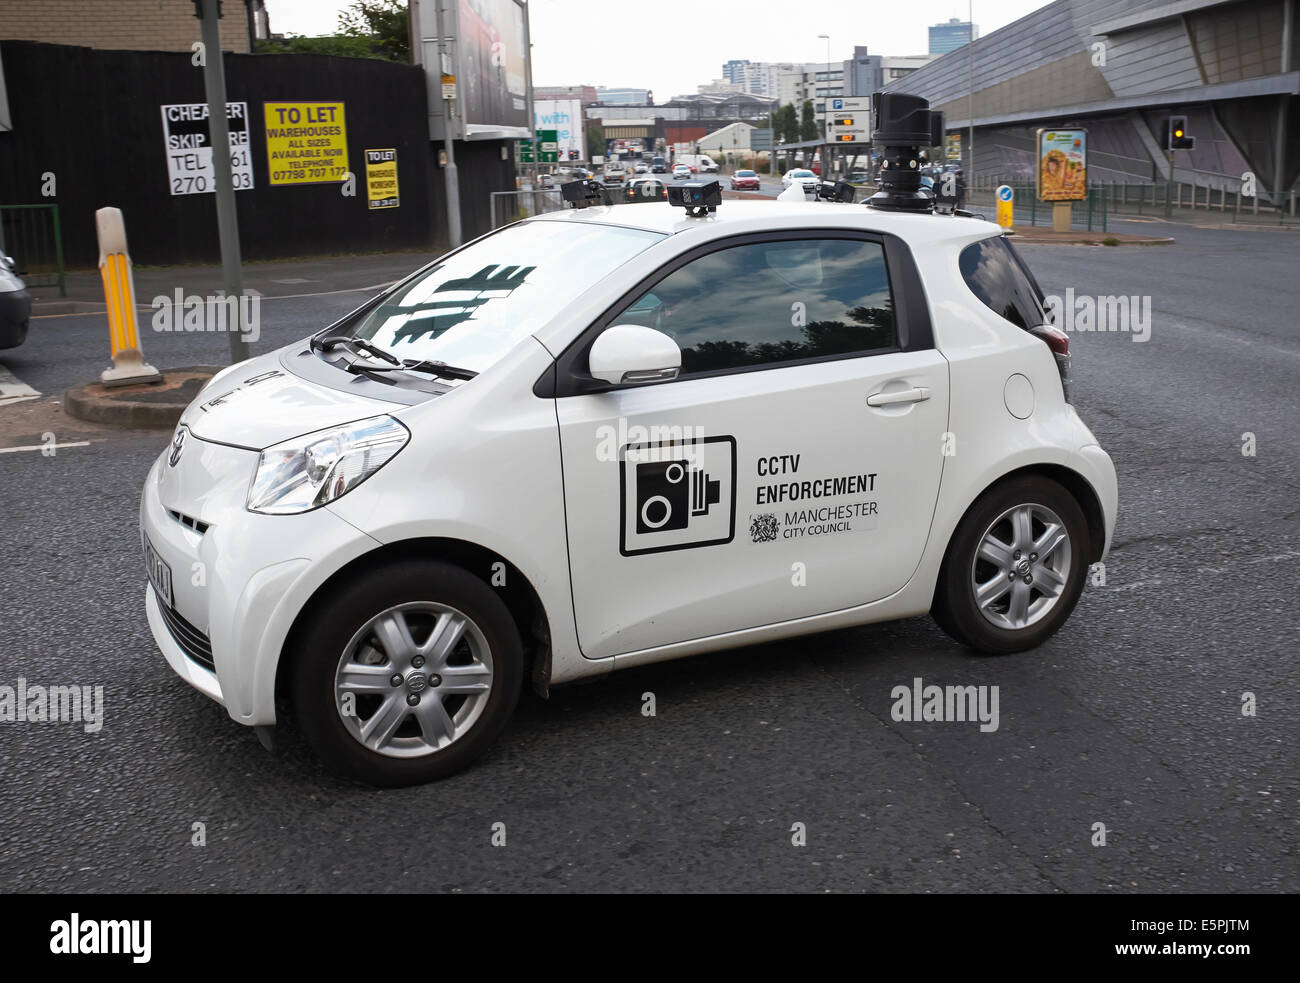 A CCTV traffic enforcement vehicle in Manchester CIty Centre UK - Stock Image